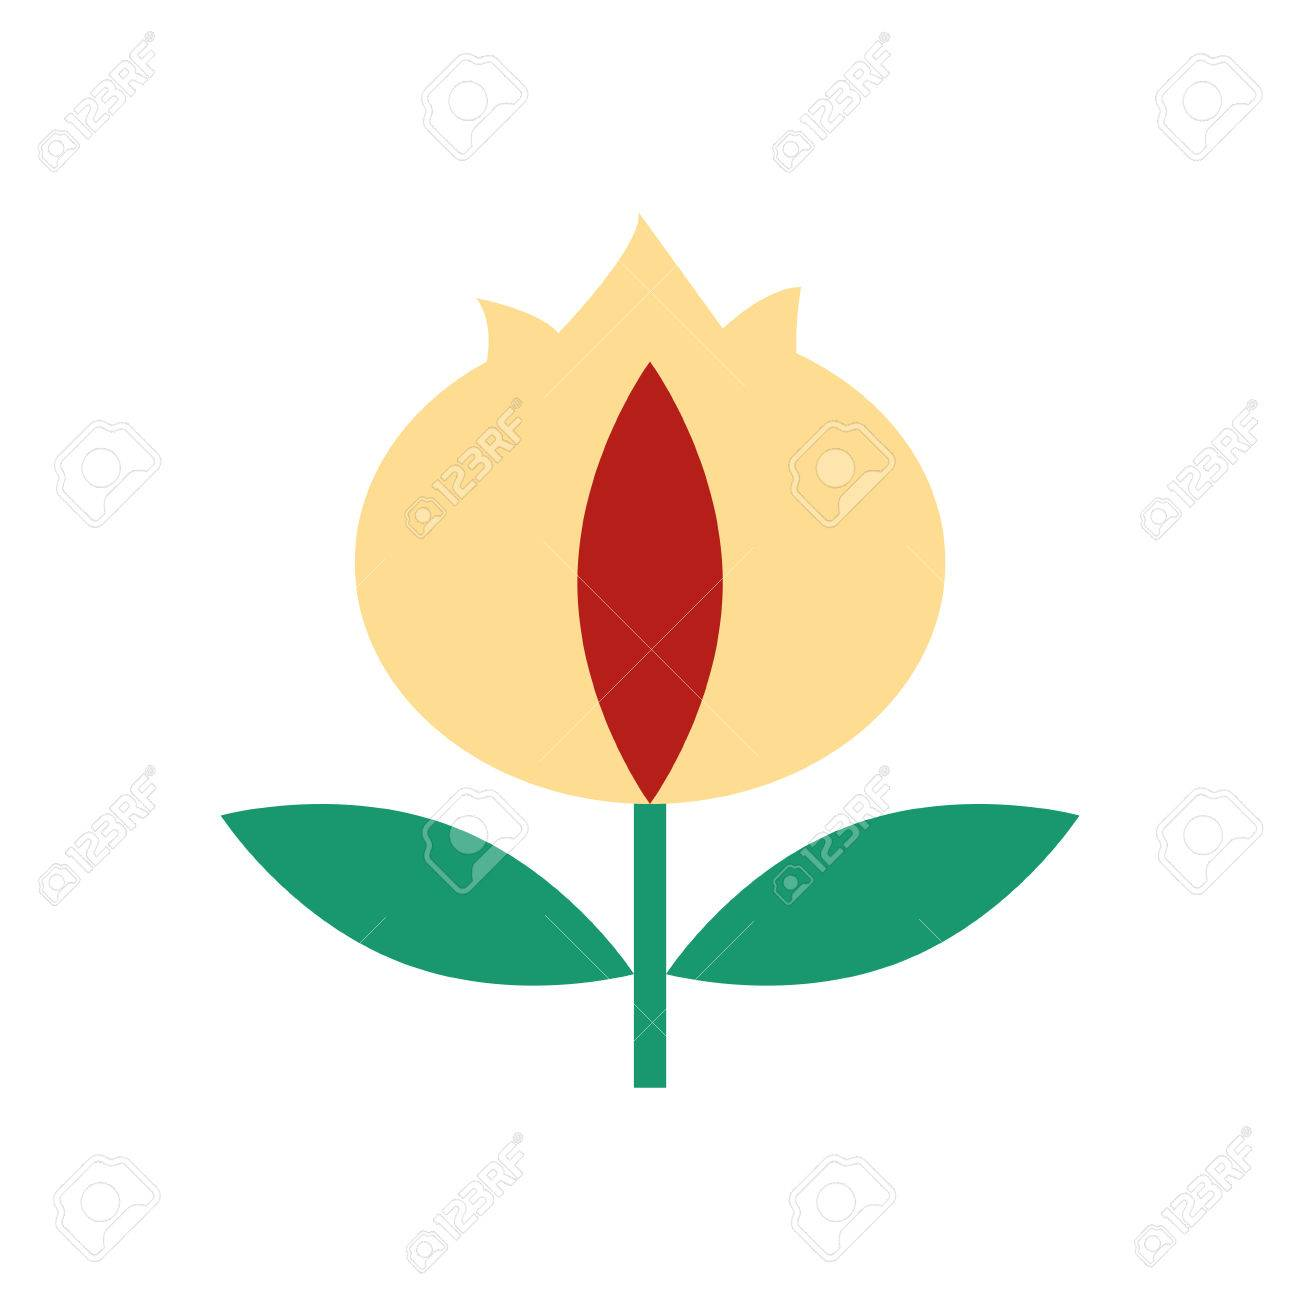 Fleur De Lys Isolated Icon Vector Illustration Design Royalty Free